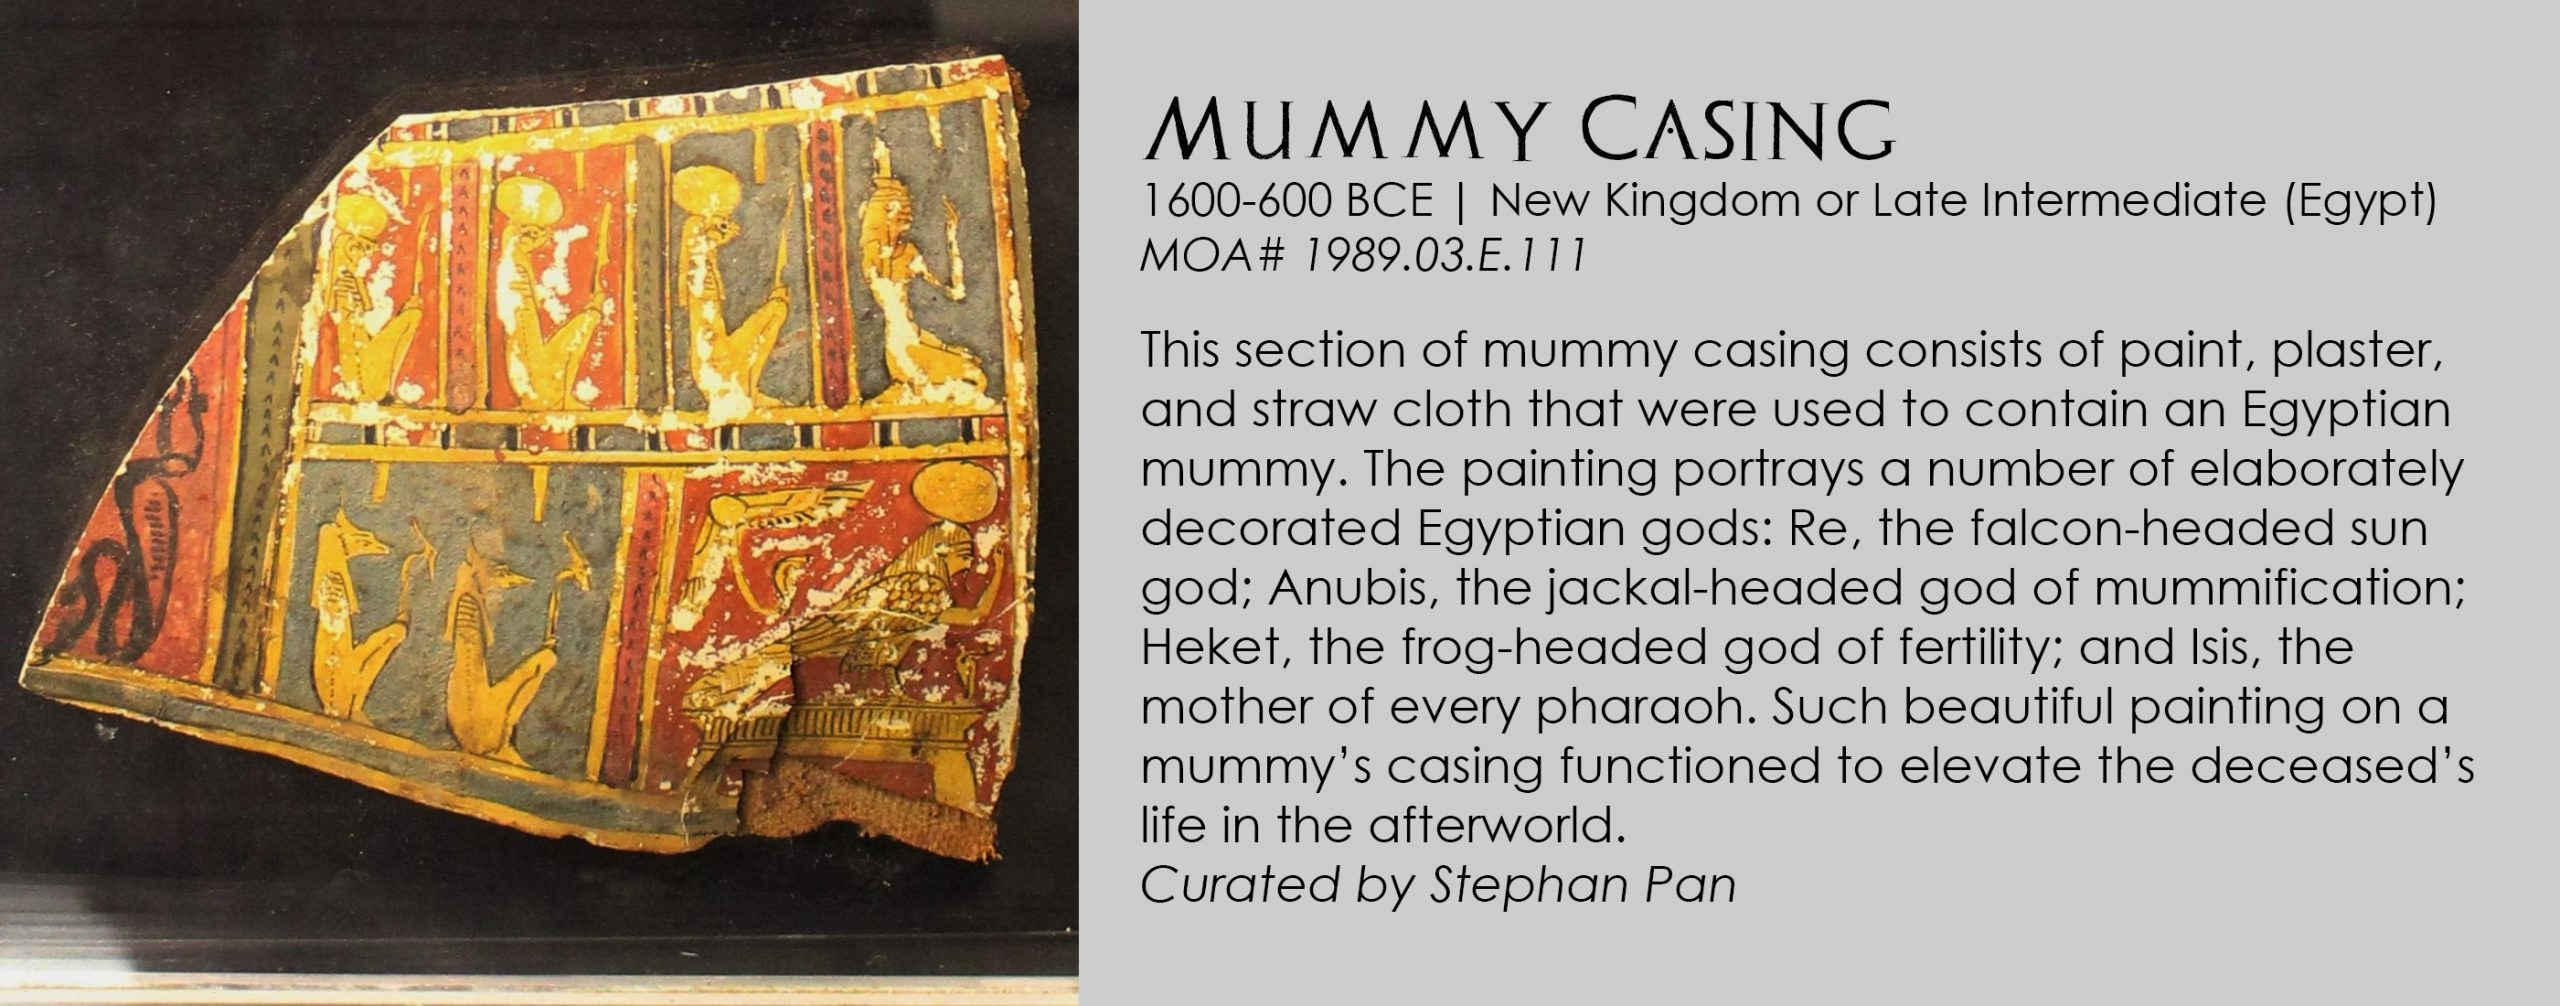 Egyptian mummy casing